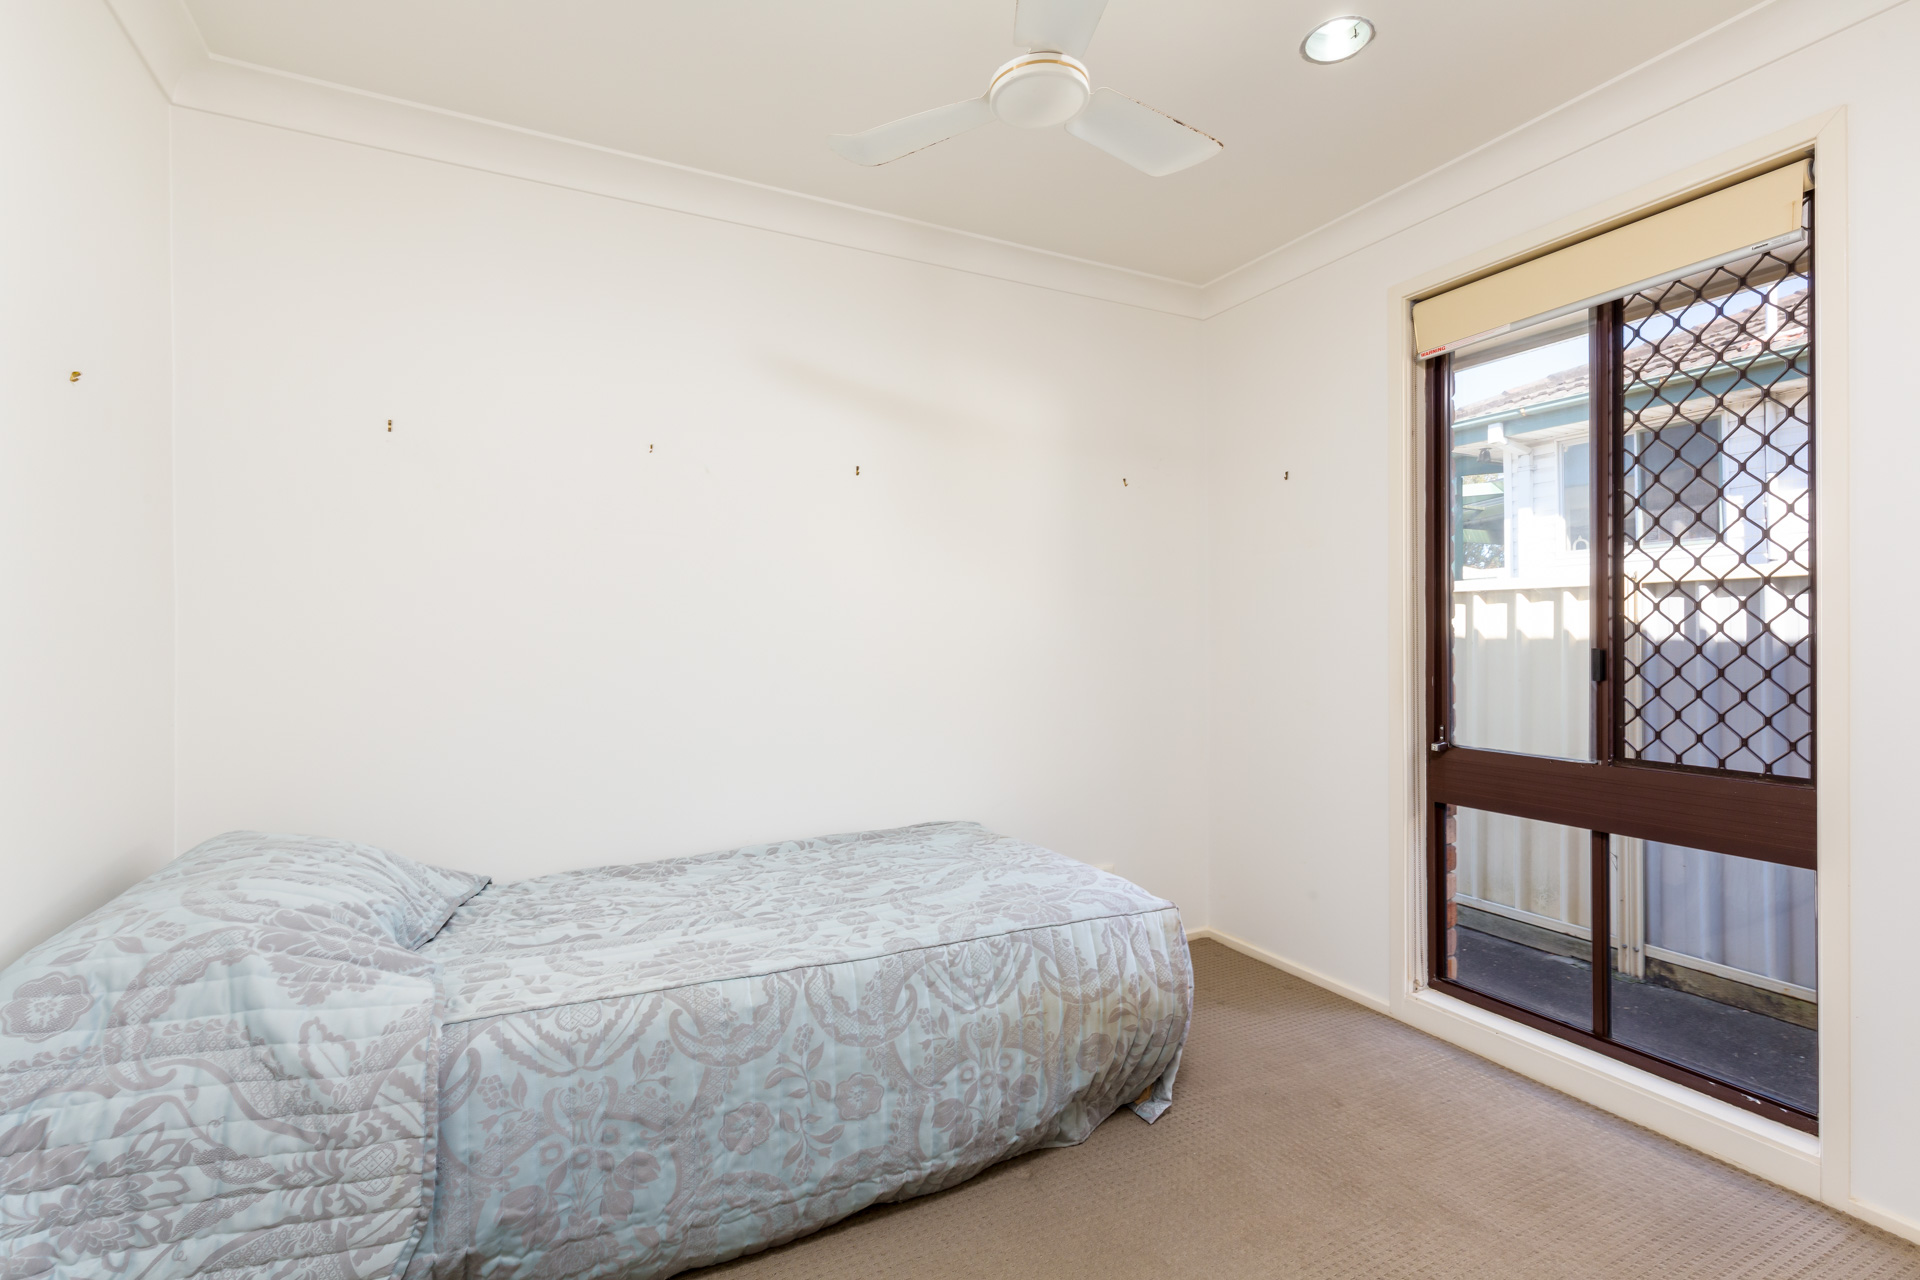 70 Medcalf St   Warners Bay (12 of 18)